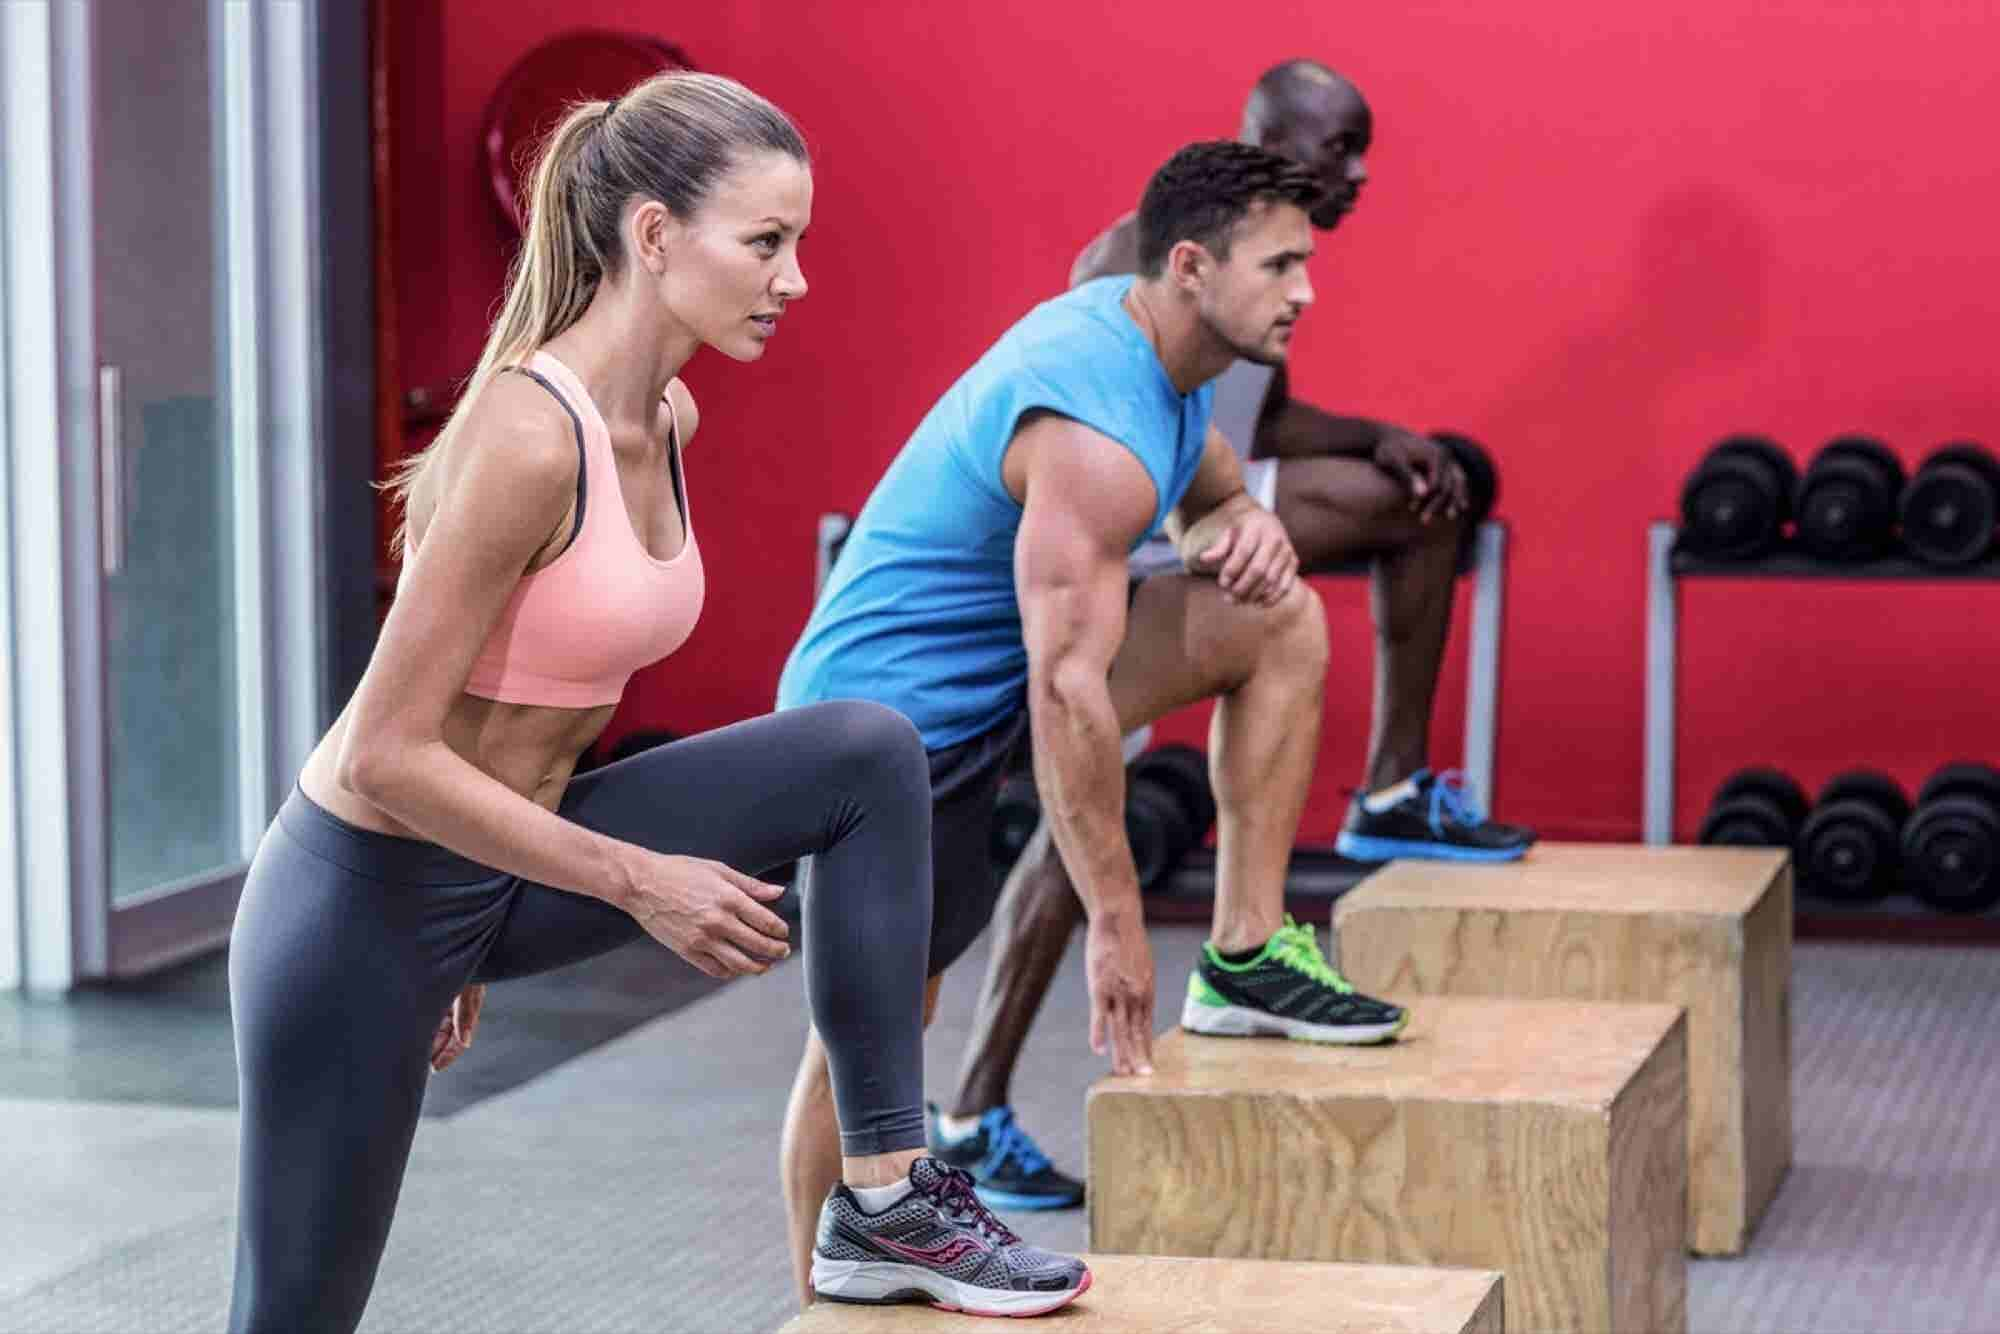 How a Visit to Crossfit Taught Me the Importance of Finding 'Company Cadence'